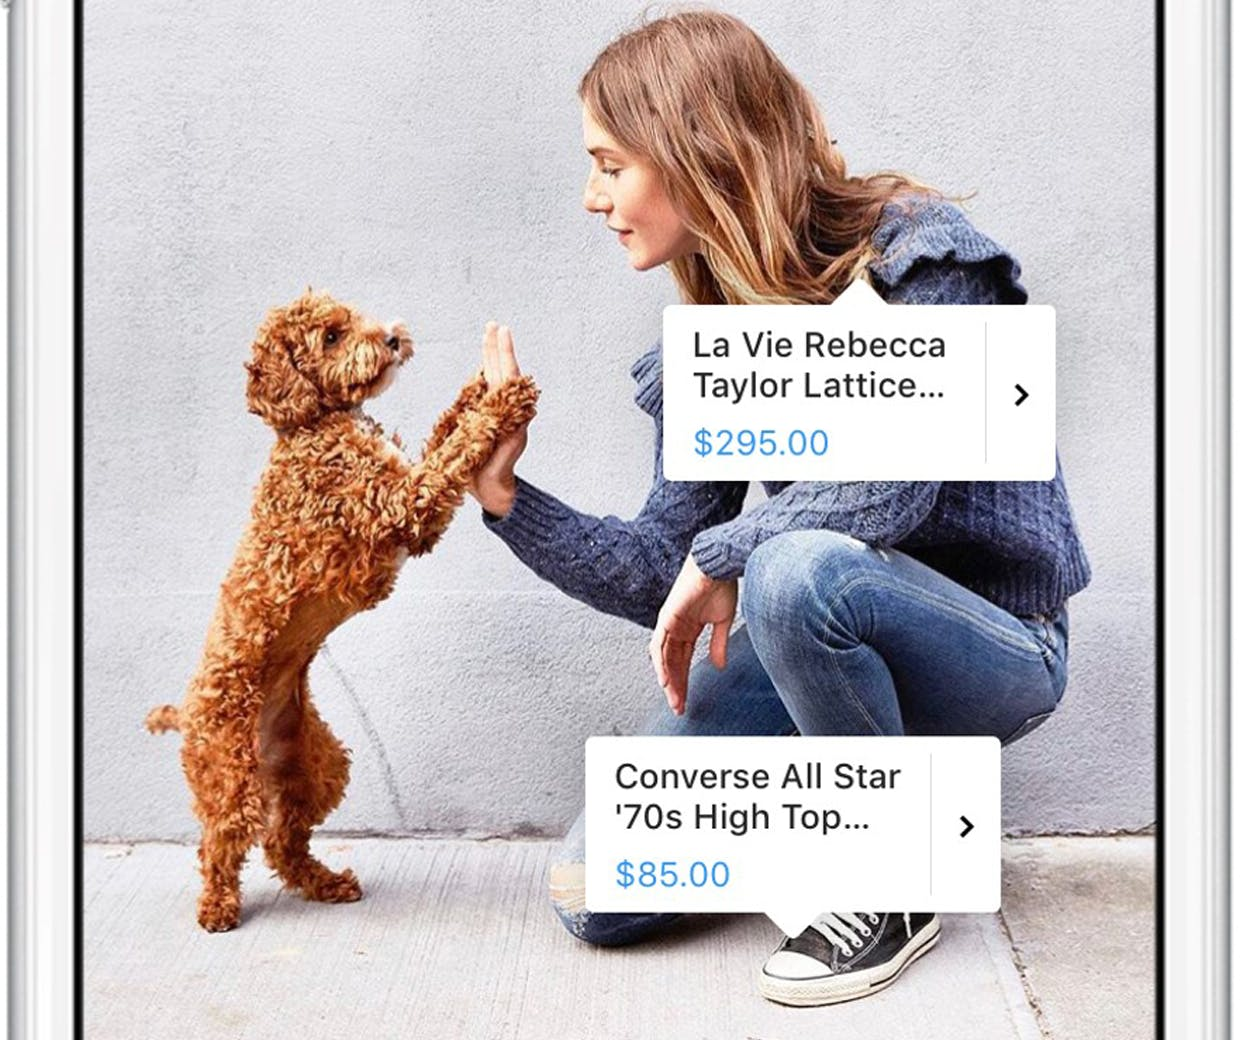 Instagram launches shoppable posts as it looks to play a bigger role in ecommerce – Marketing Week